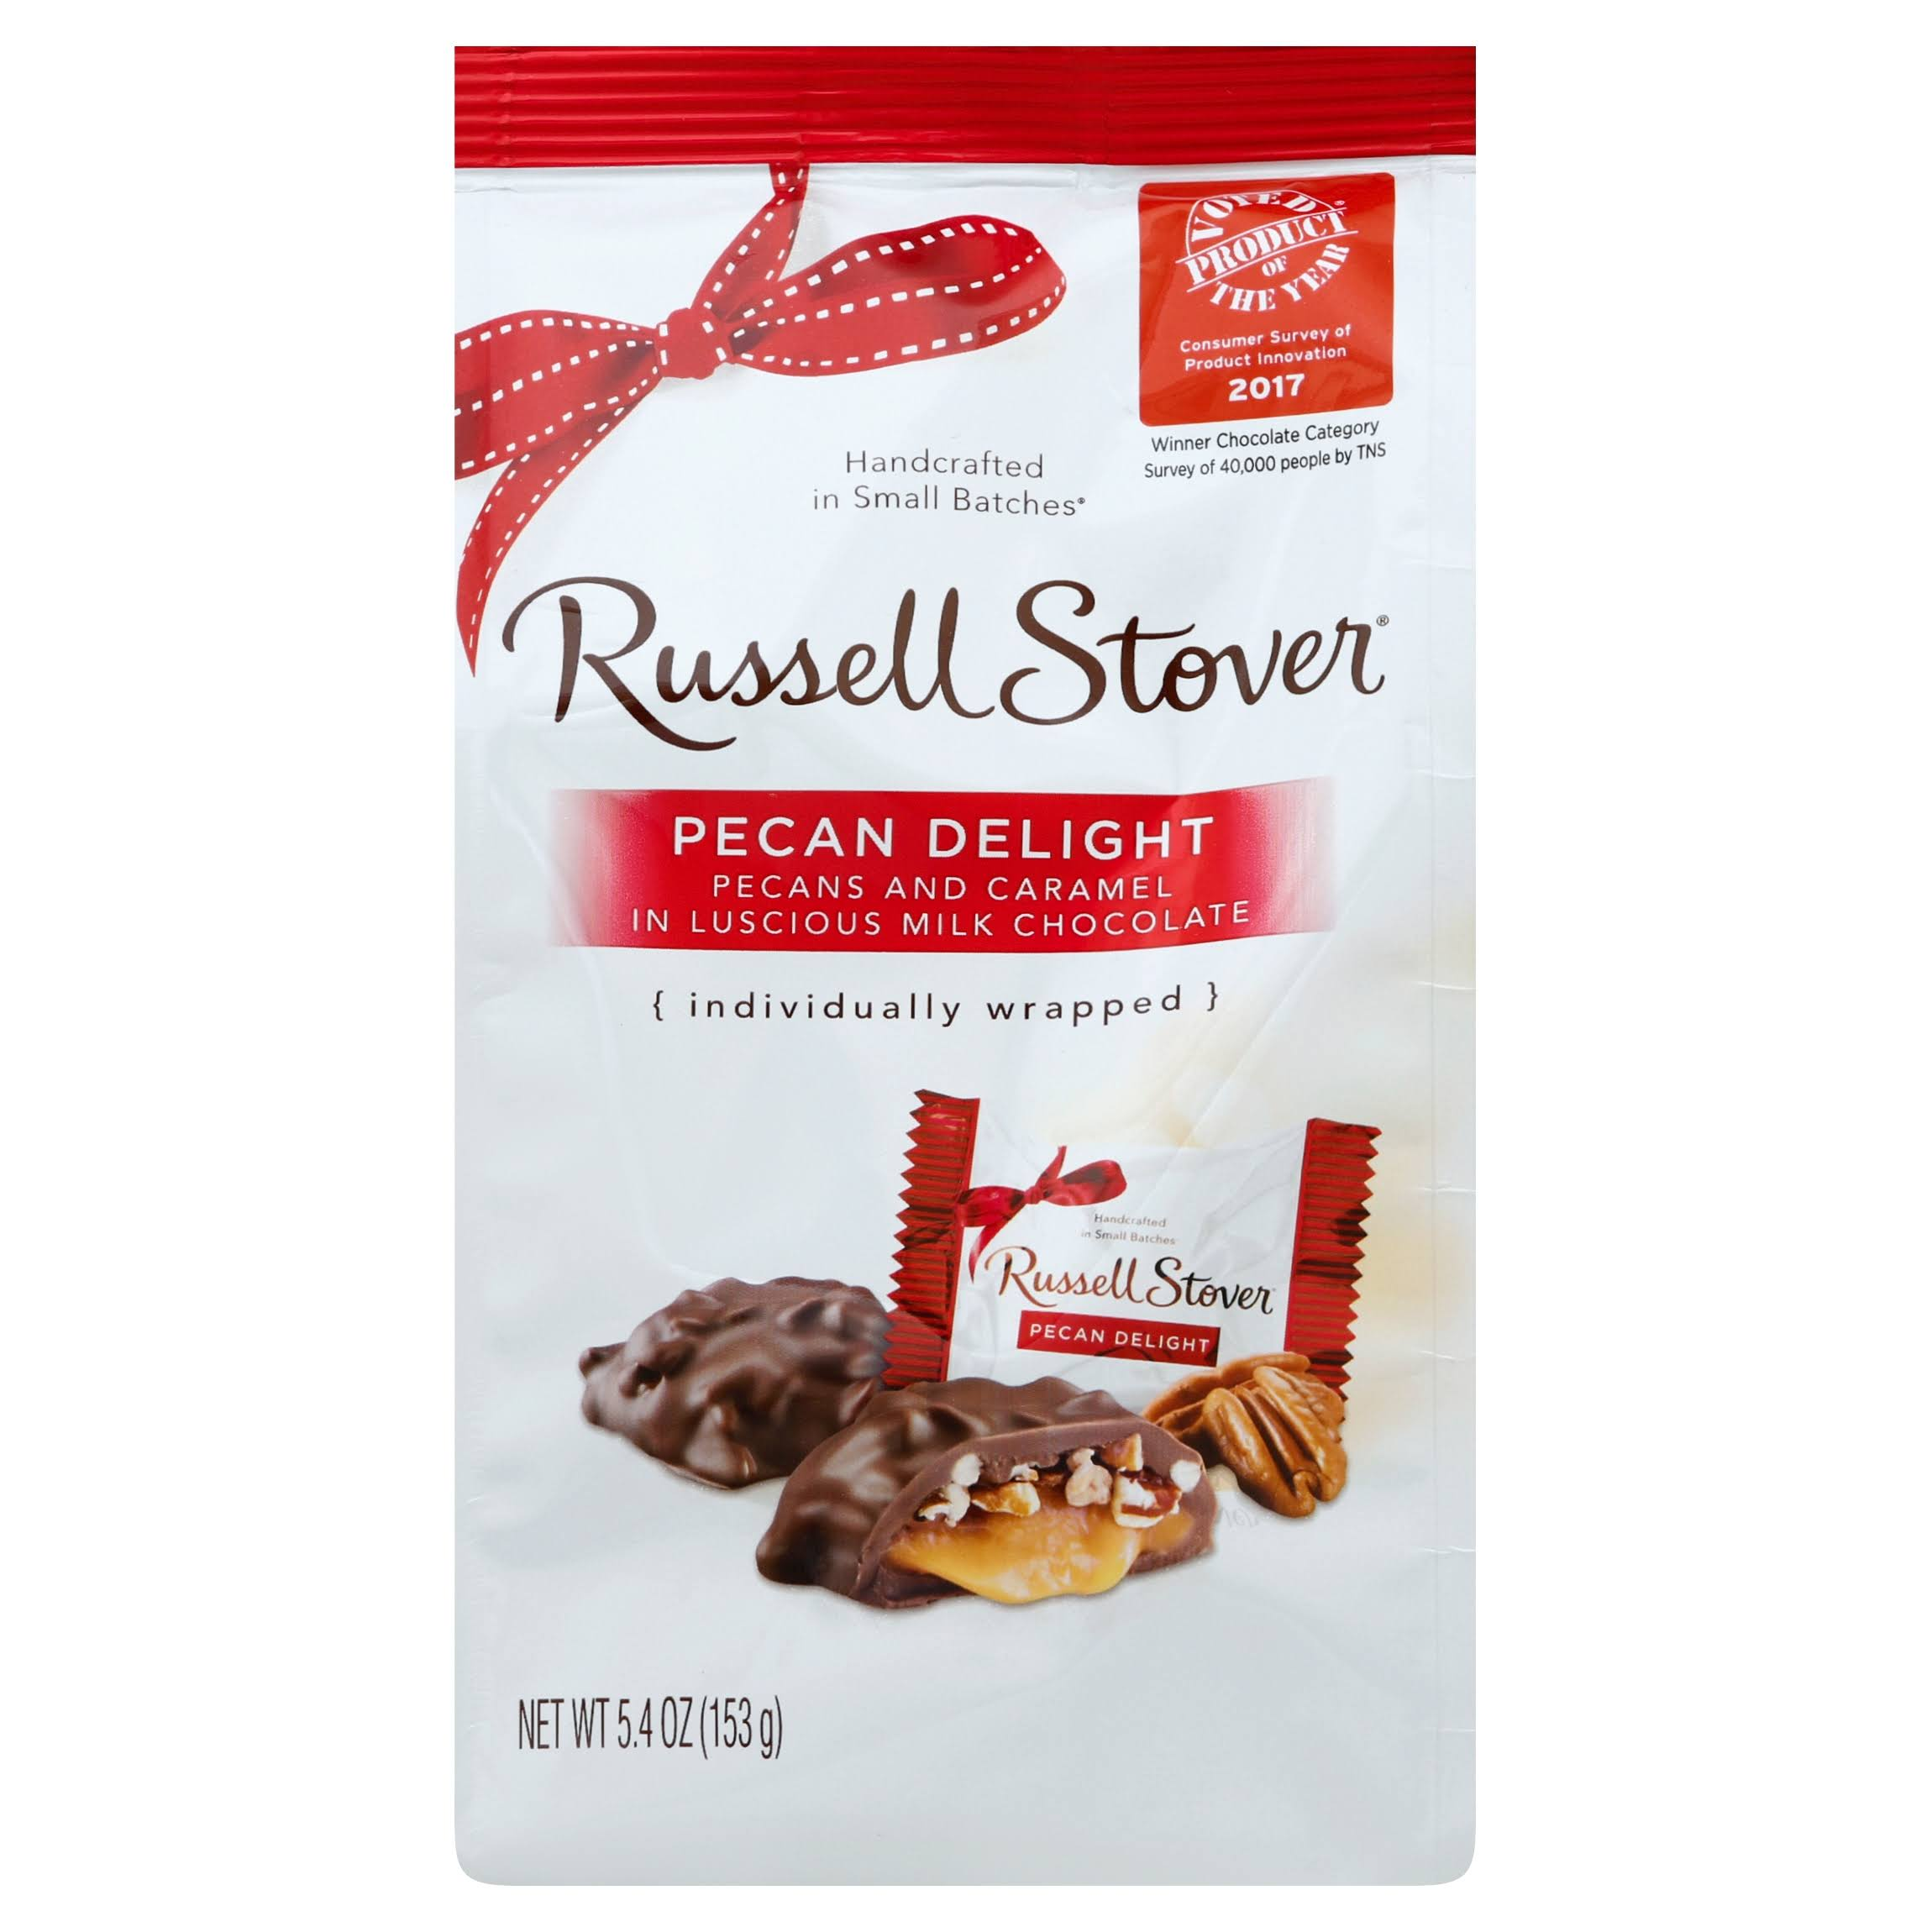 Russell Stover Pecan Delight Caramel and Luscious Milk Chocolate - 5.4oz